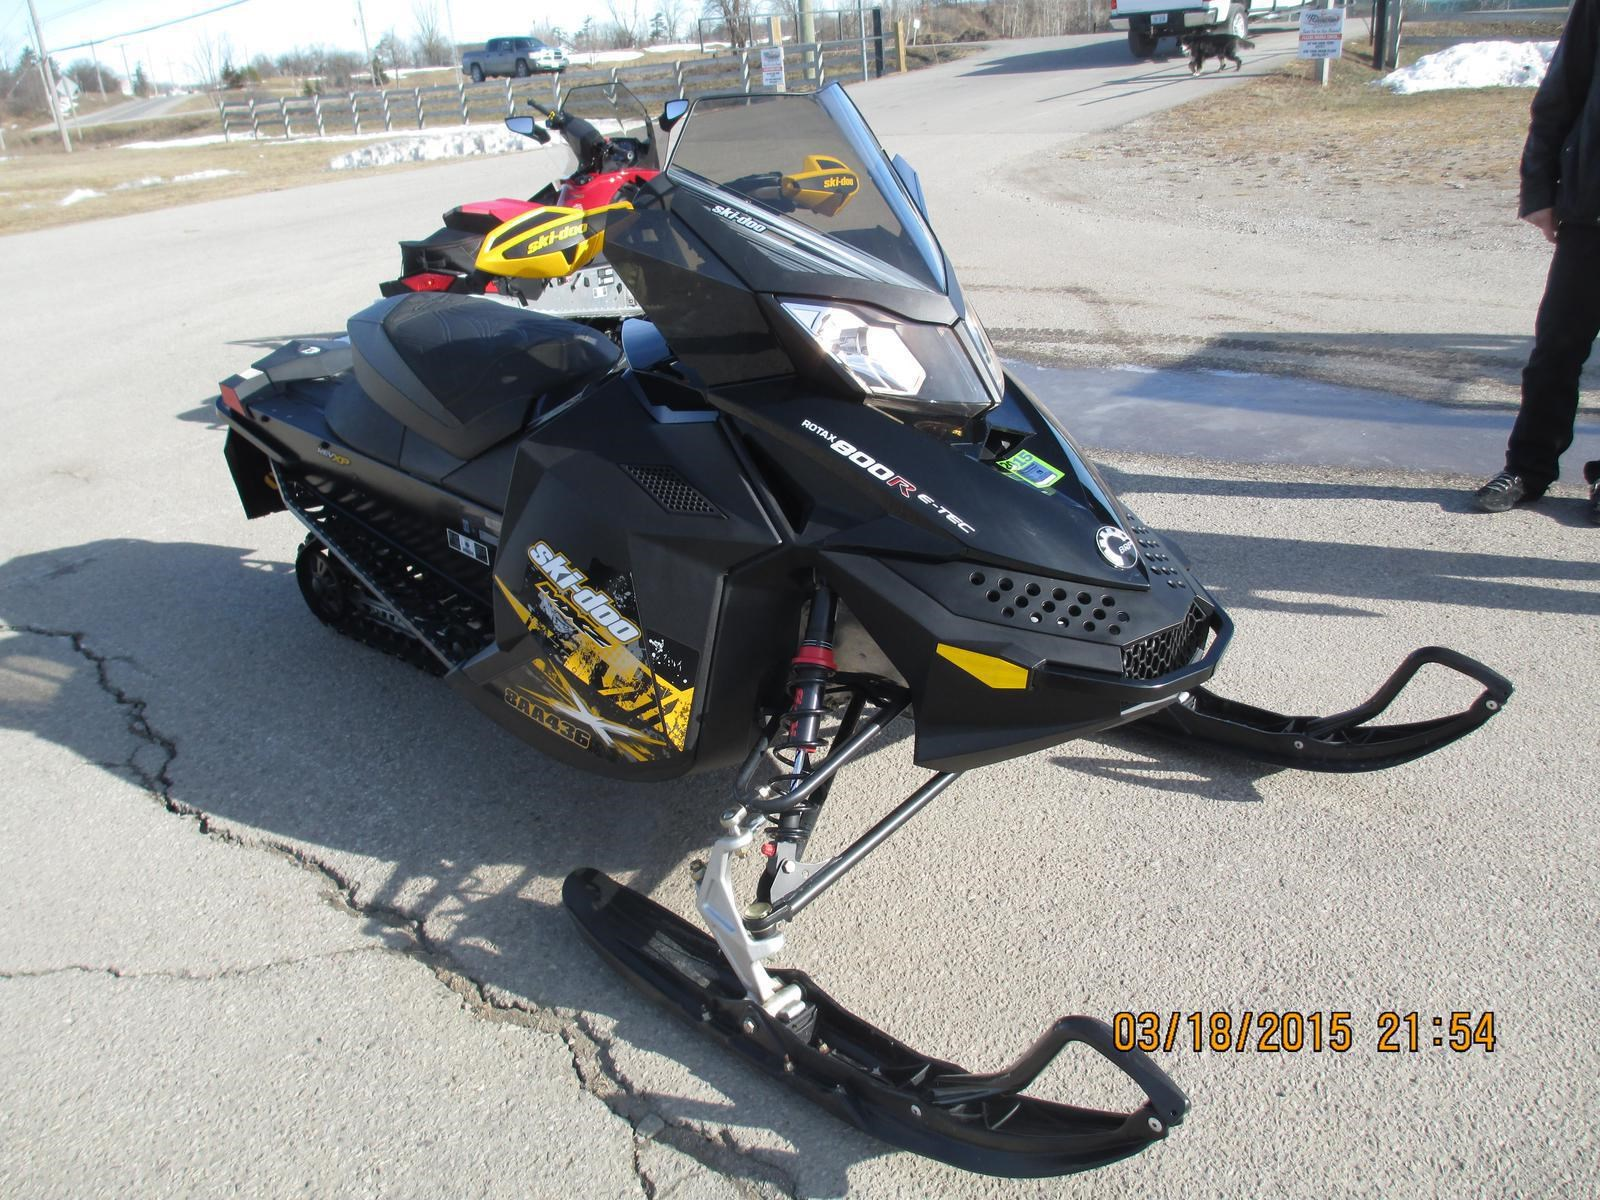 Used ski doo snowmobiles bing images for Used yamaha snowmobiles for sale in wisconsin